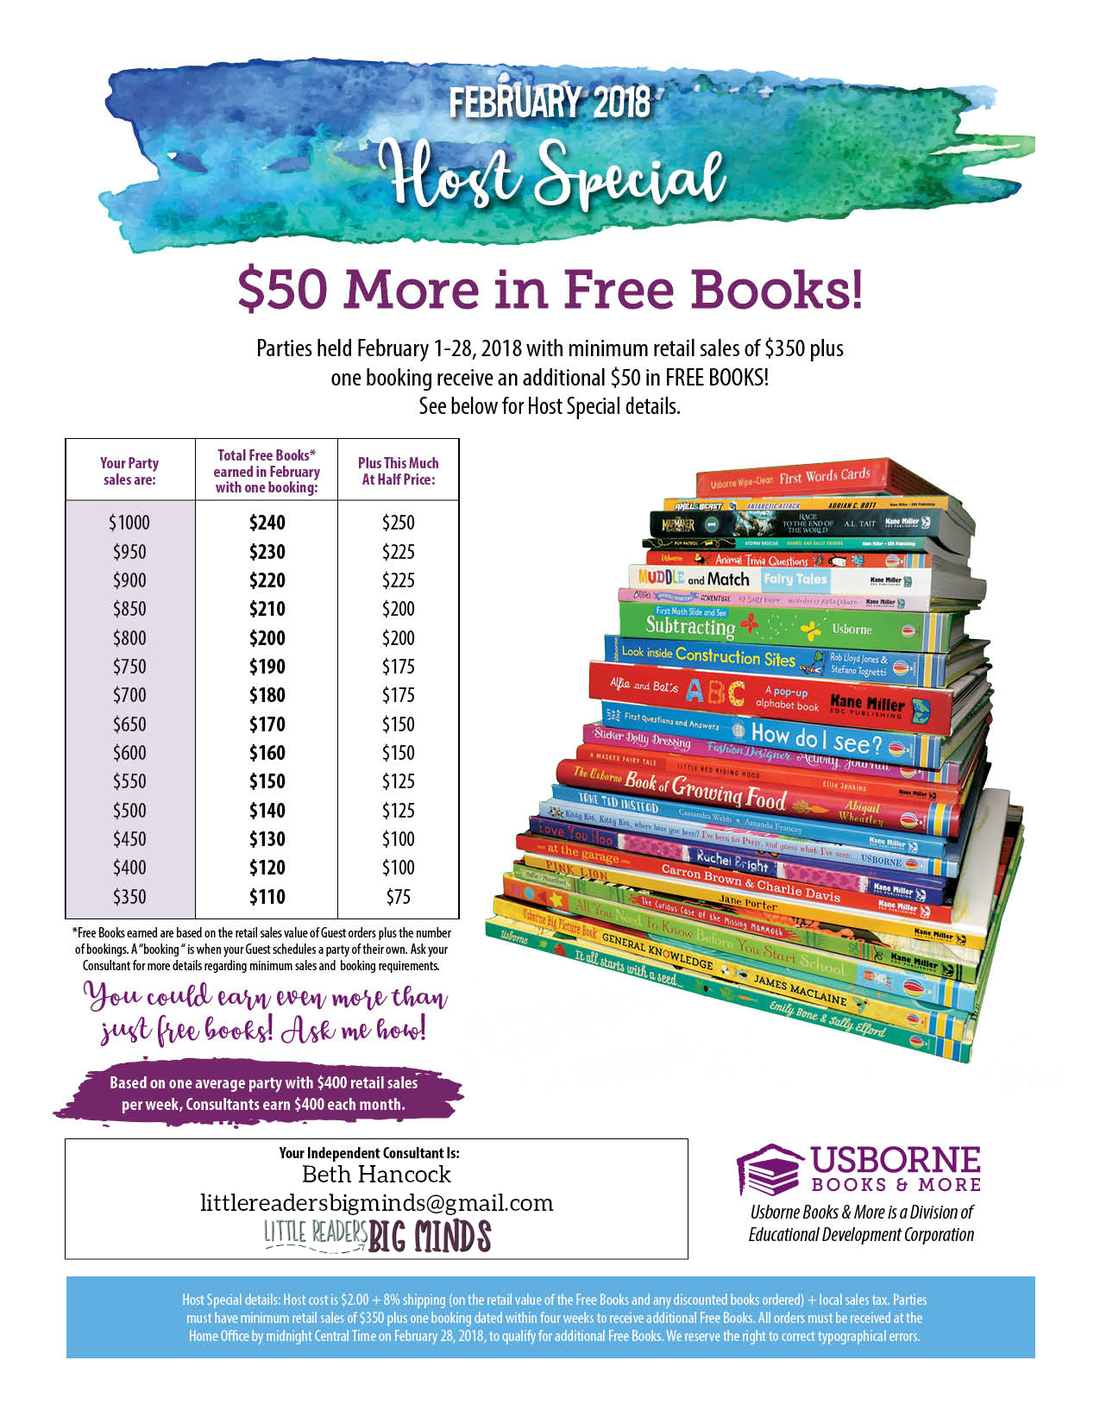 Usborne February 2019 Calendar Extra $50 in FREE BOOKS for February Party Hosts   Direct Sales